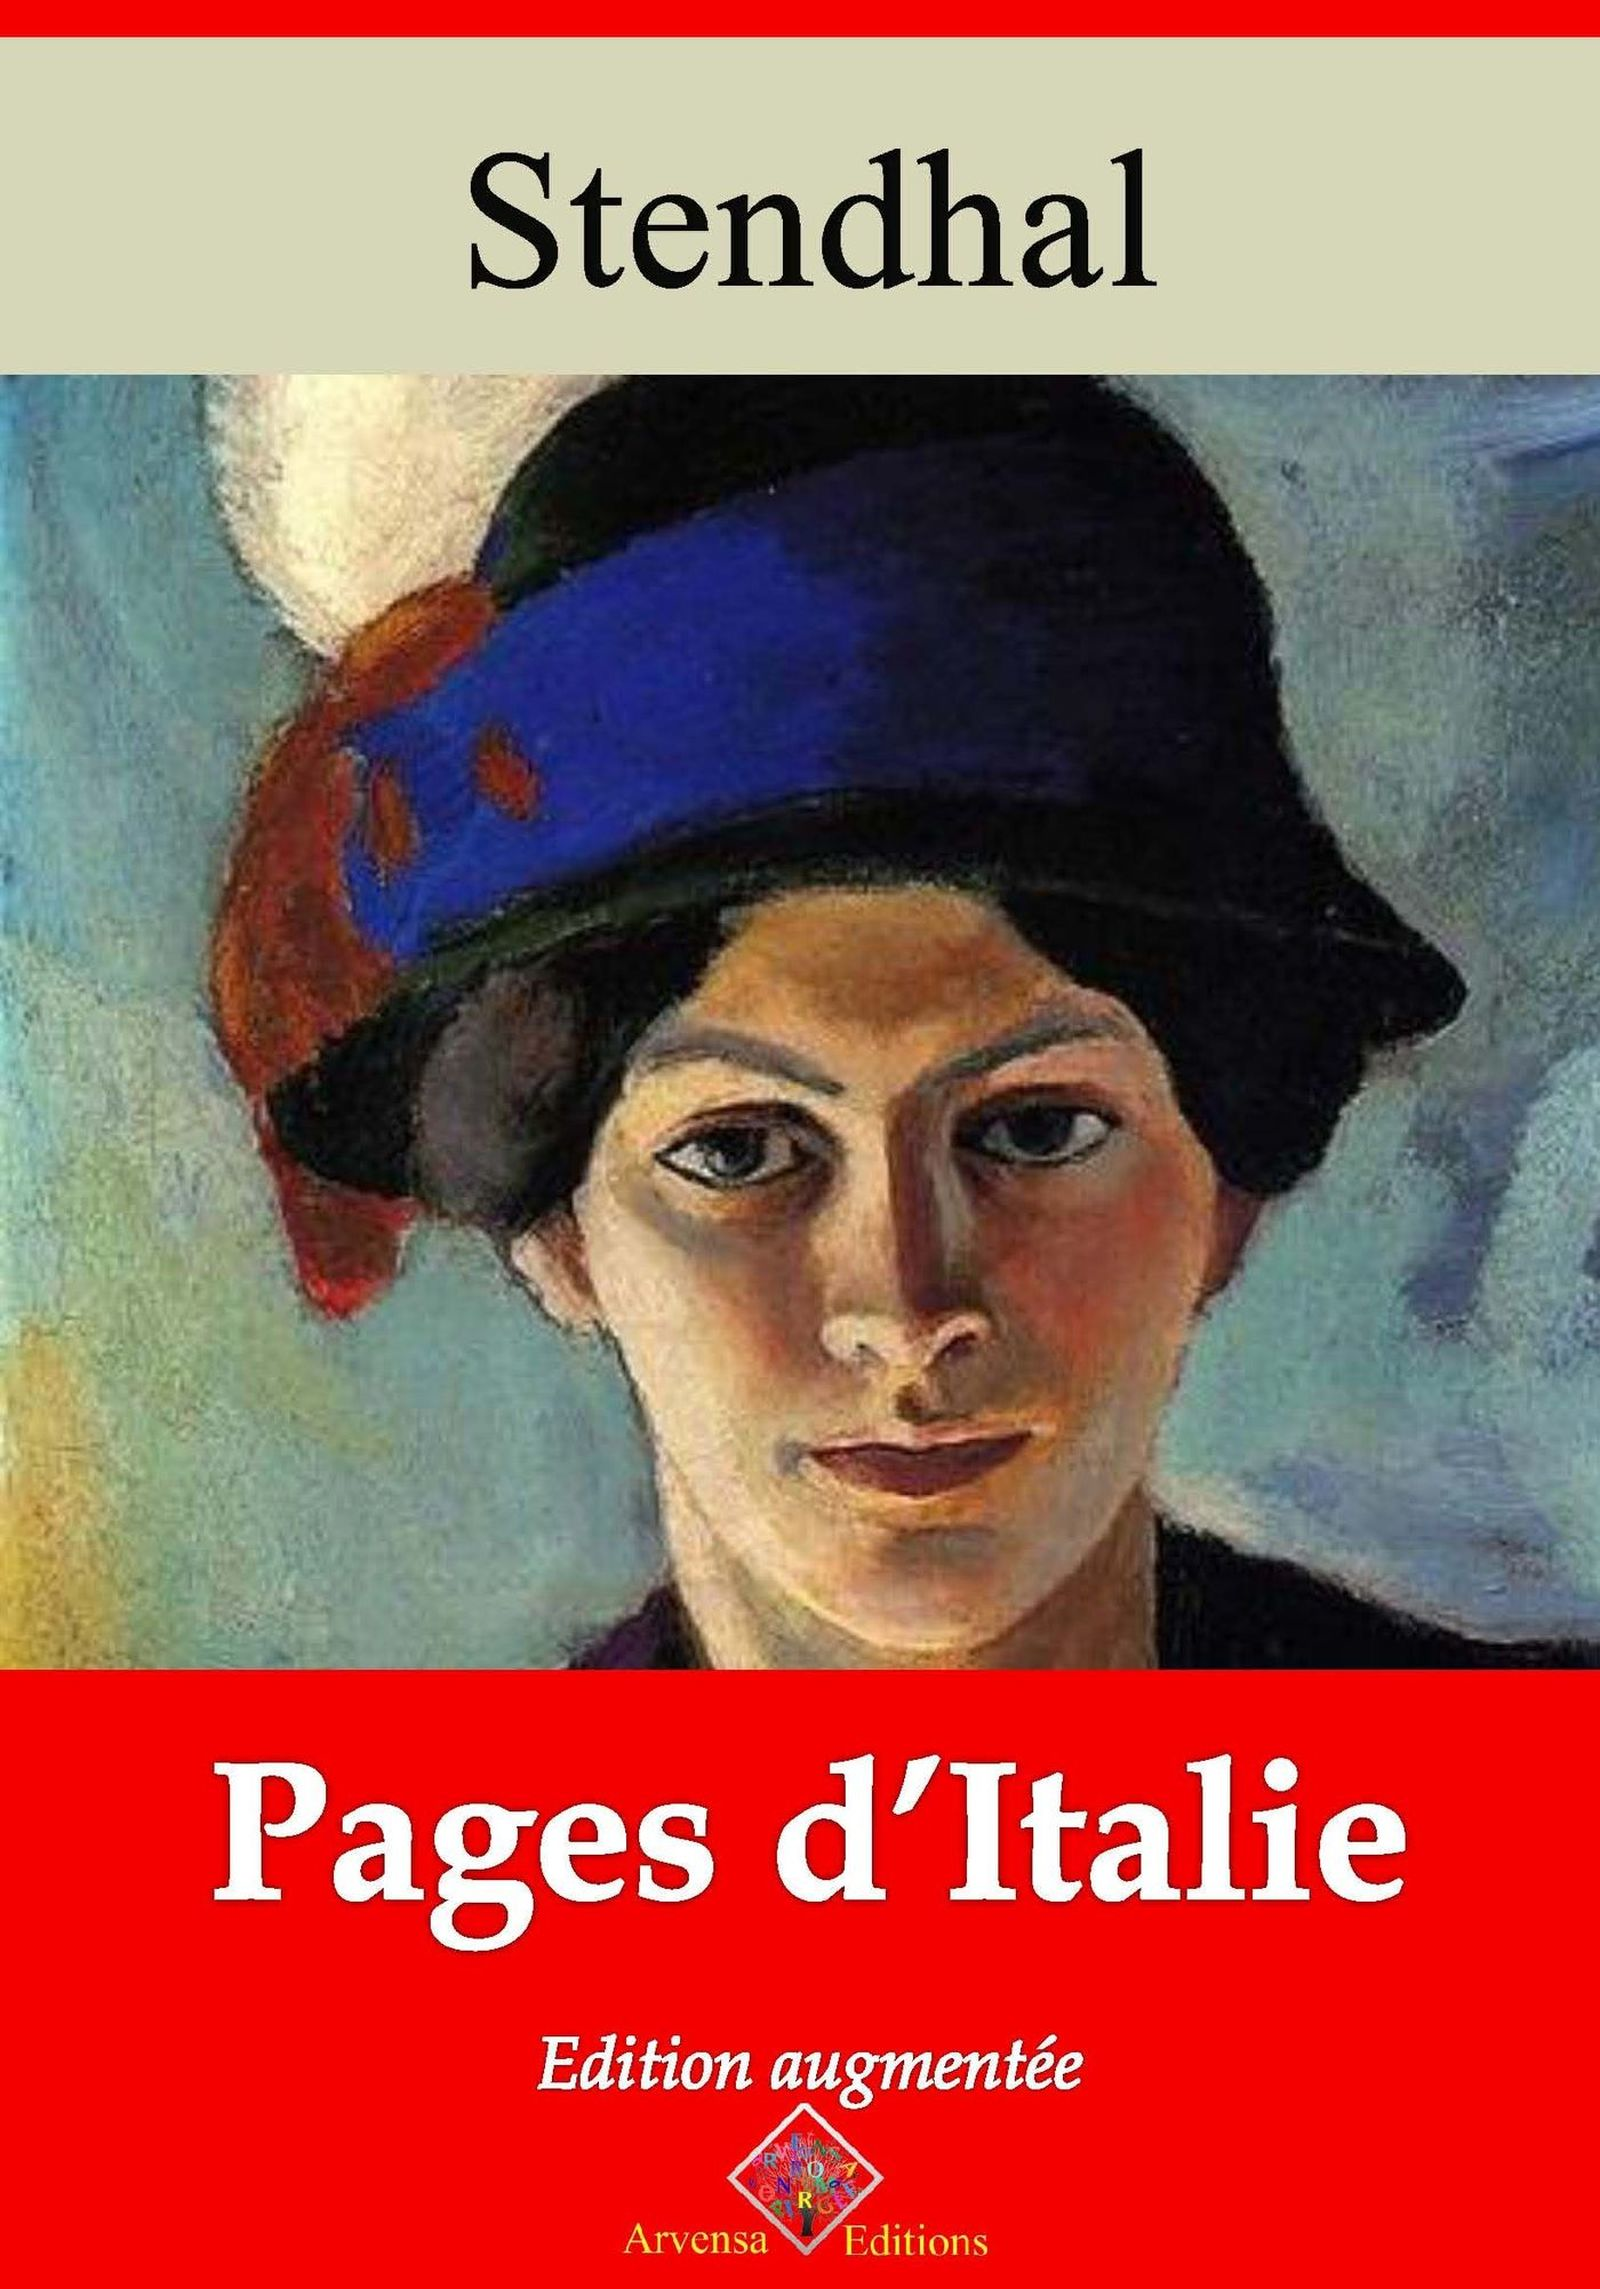 Pages d'Italie – suivi d'annexes